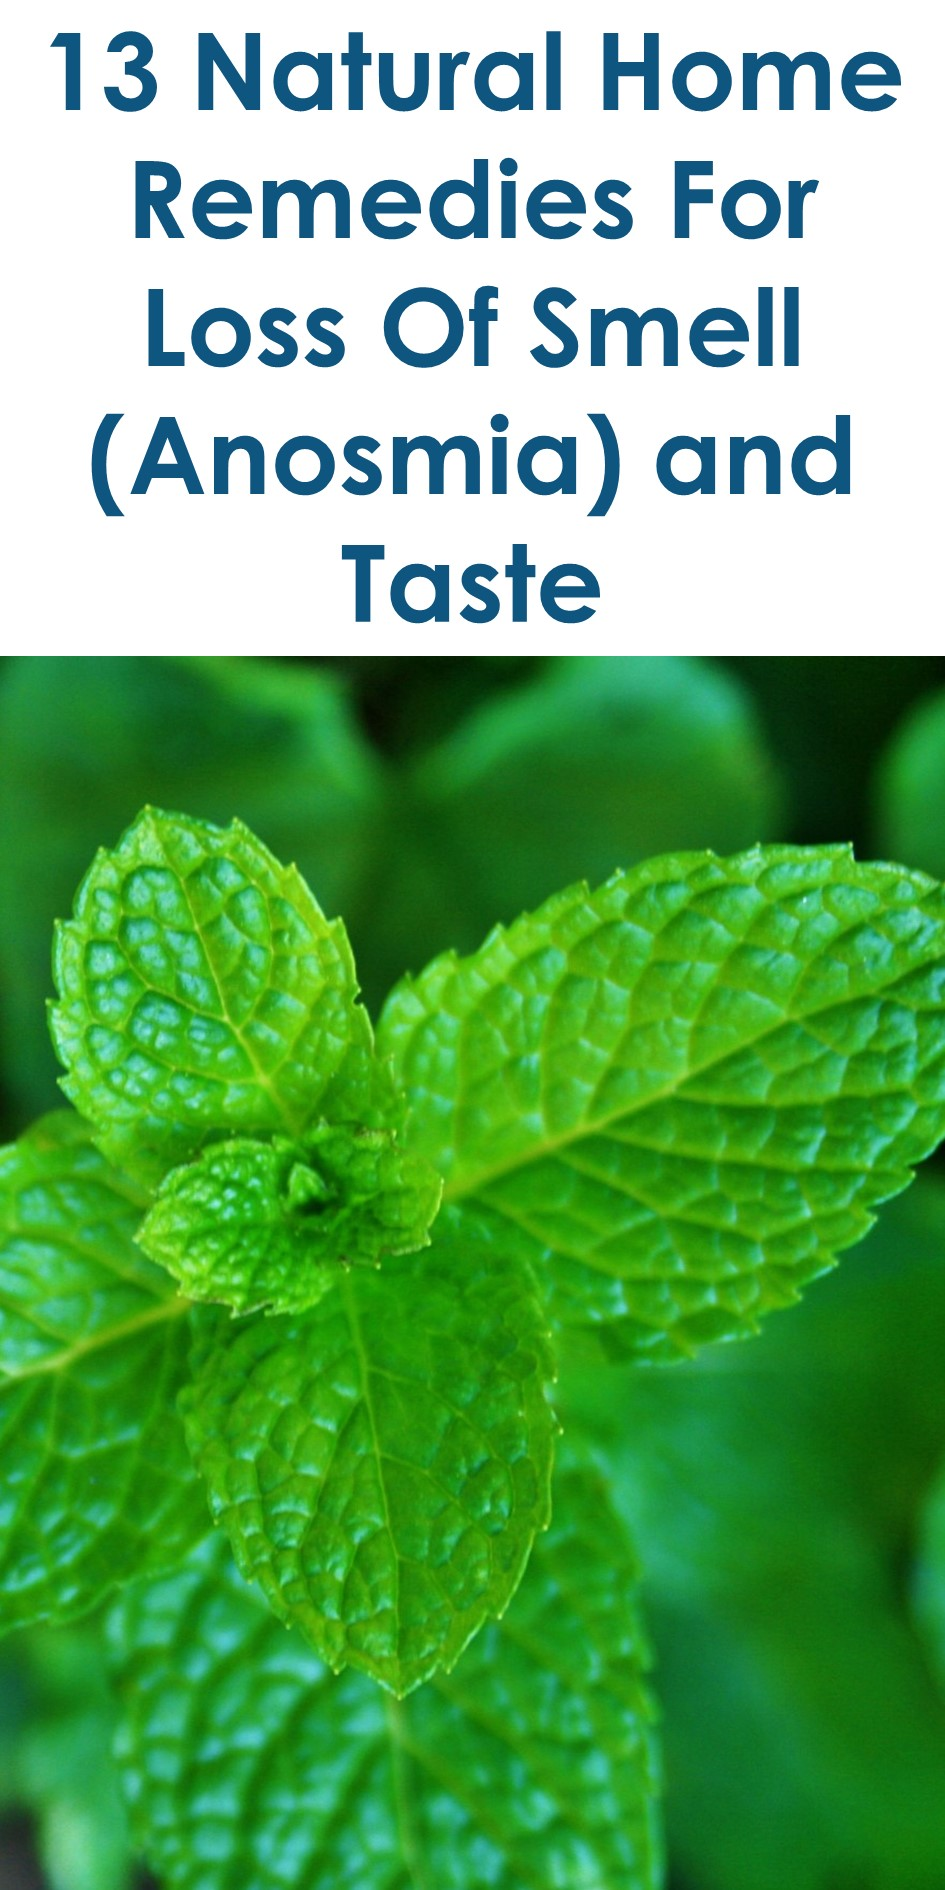 Treatment for loss of taste and smell